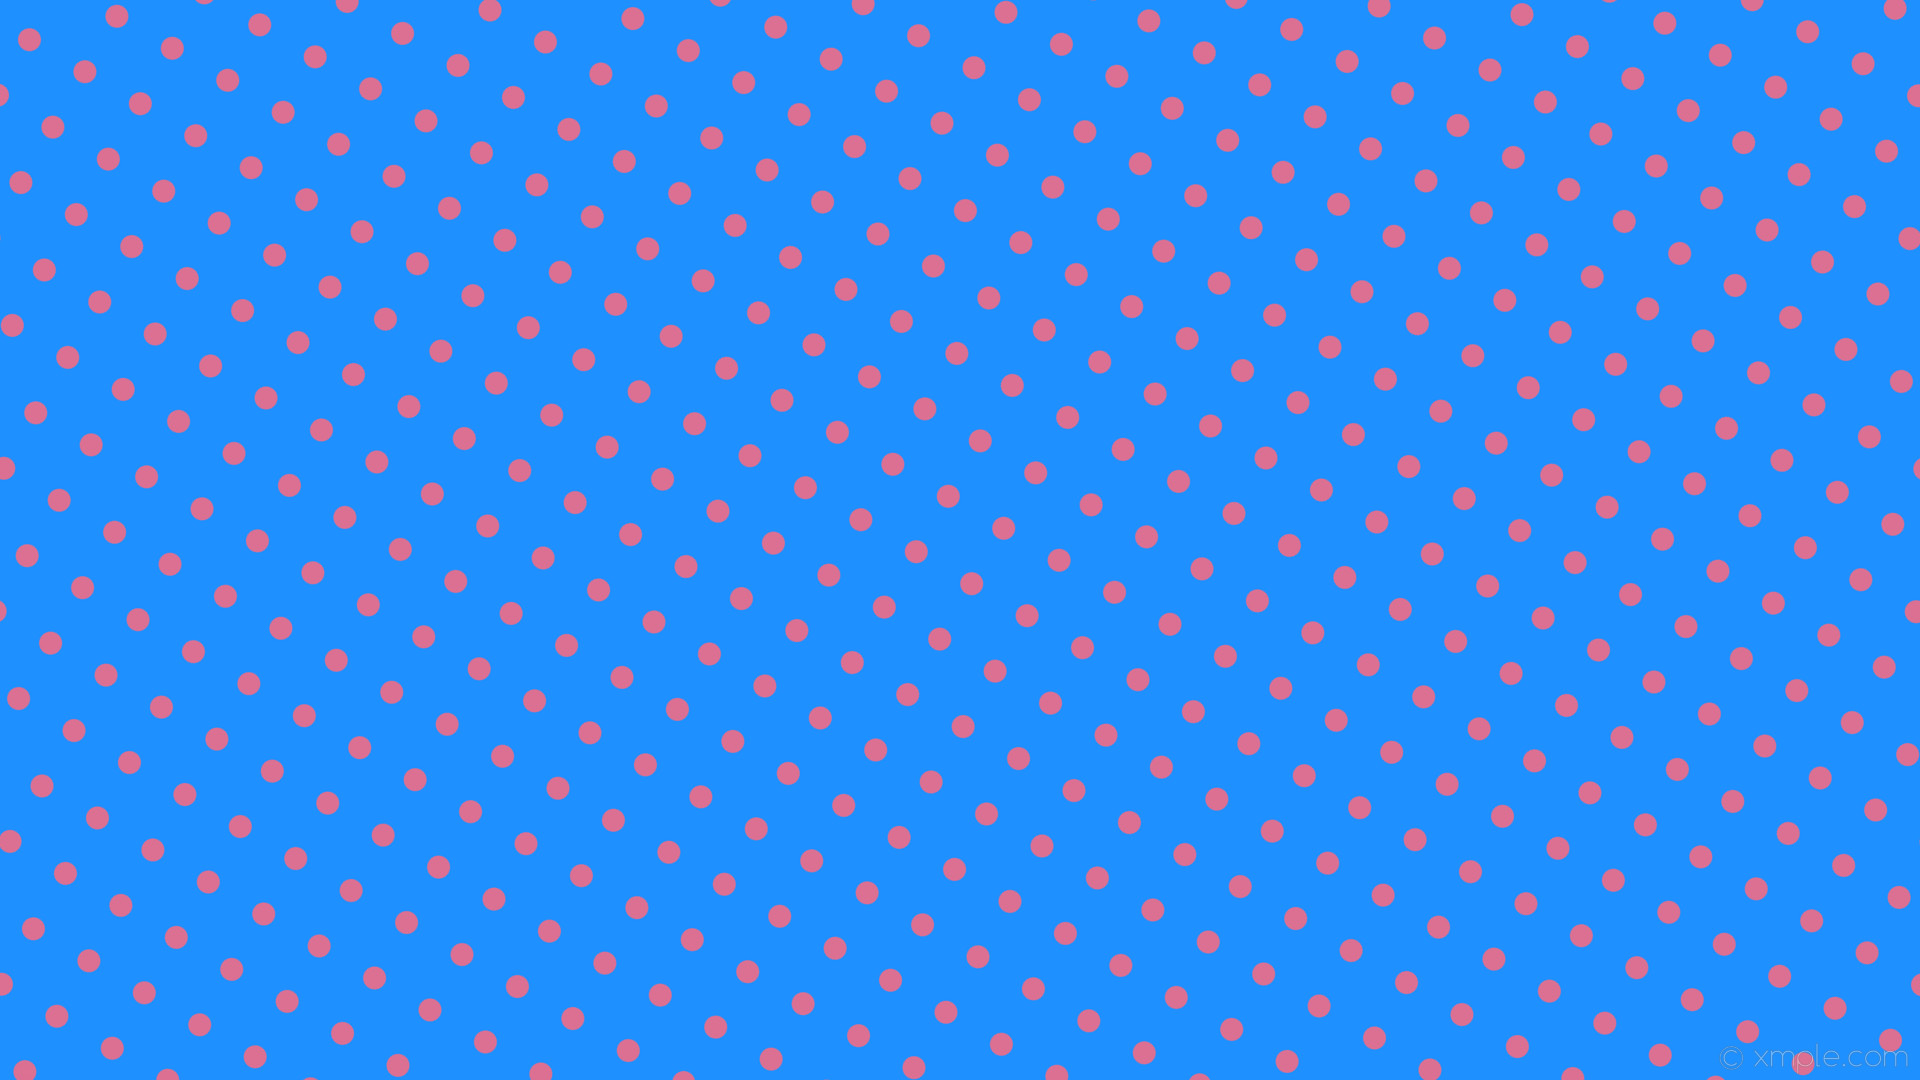 wallpaper spots pink blue polka dots dodger blue pale violet red #1e90ff  #db7093 330